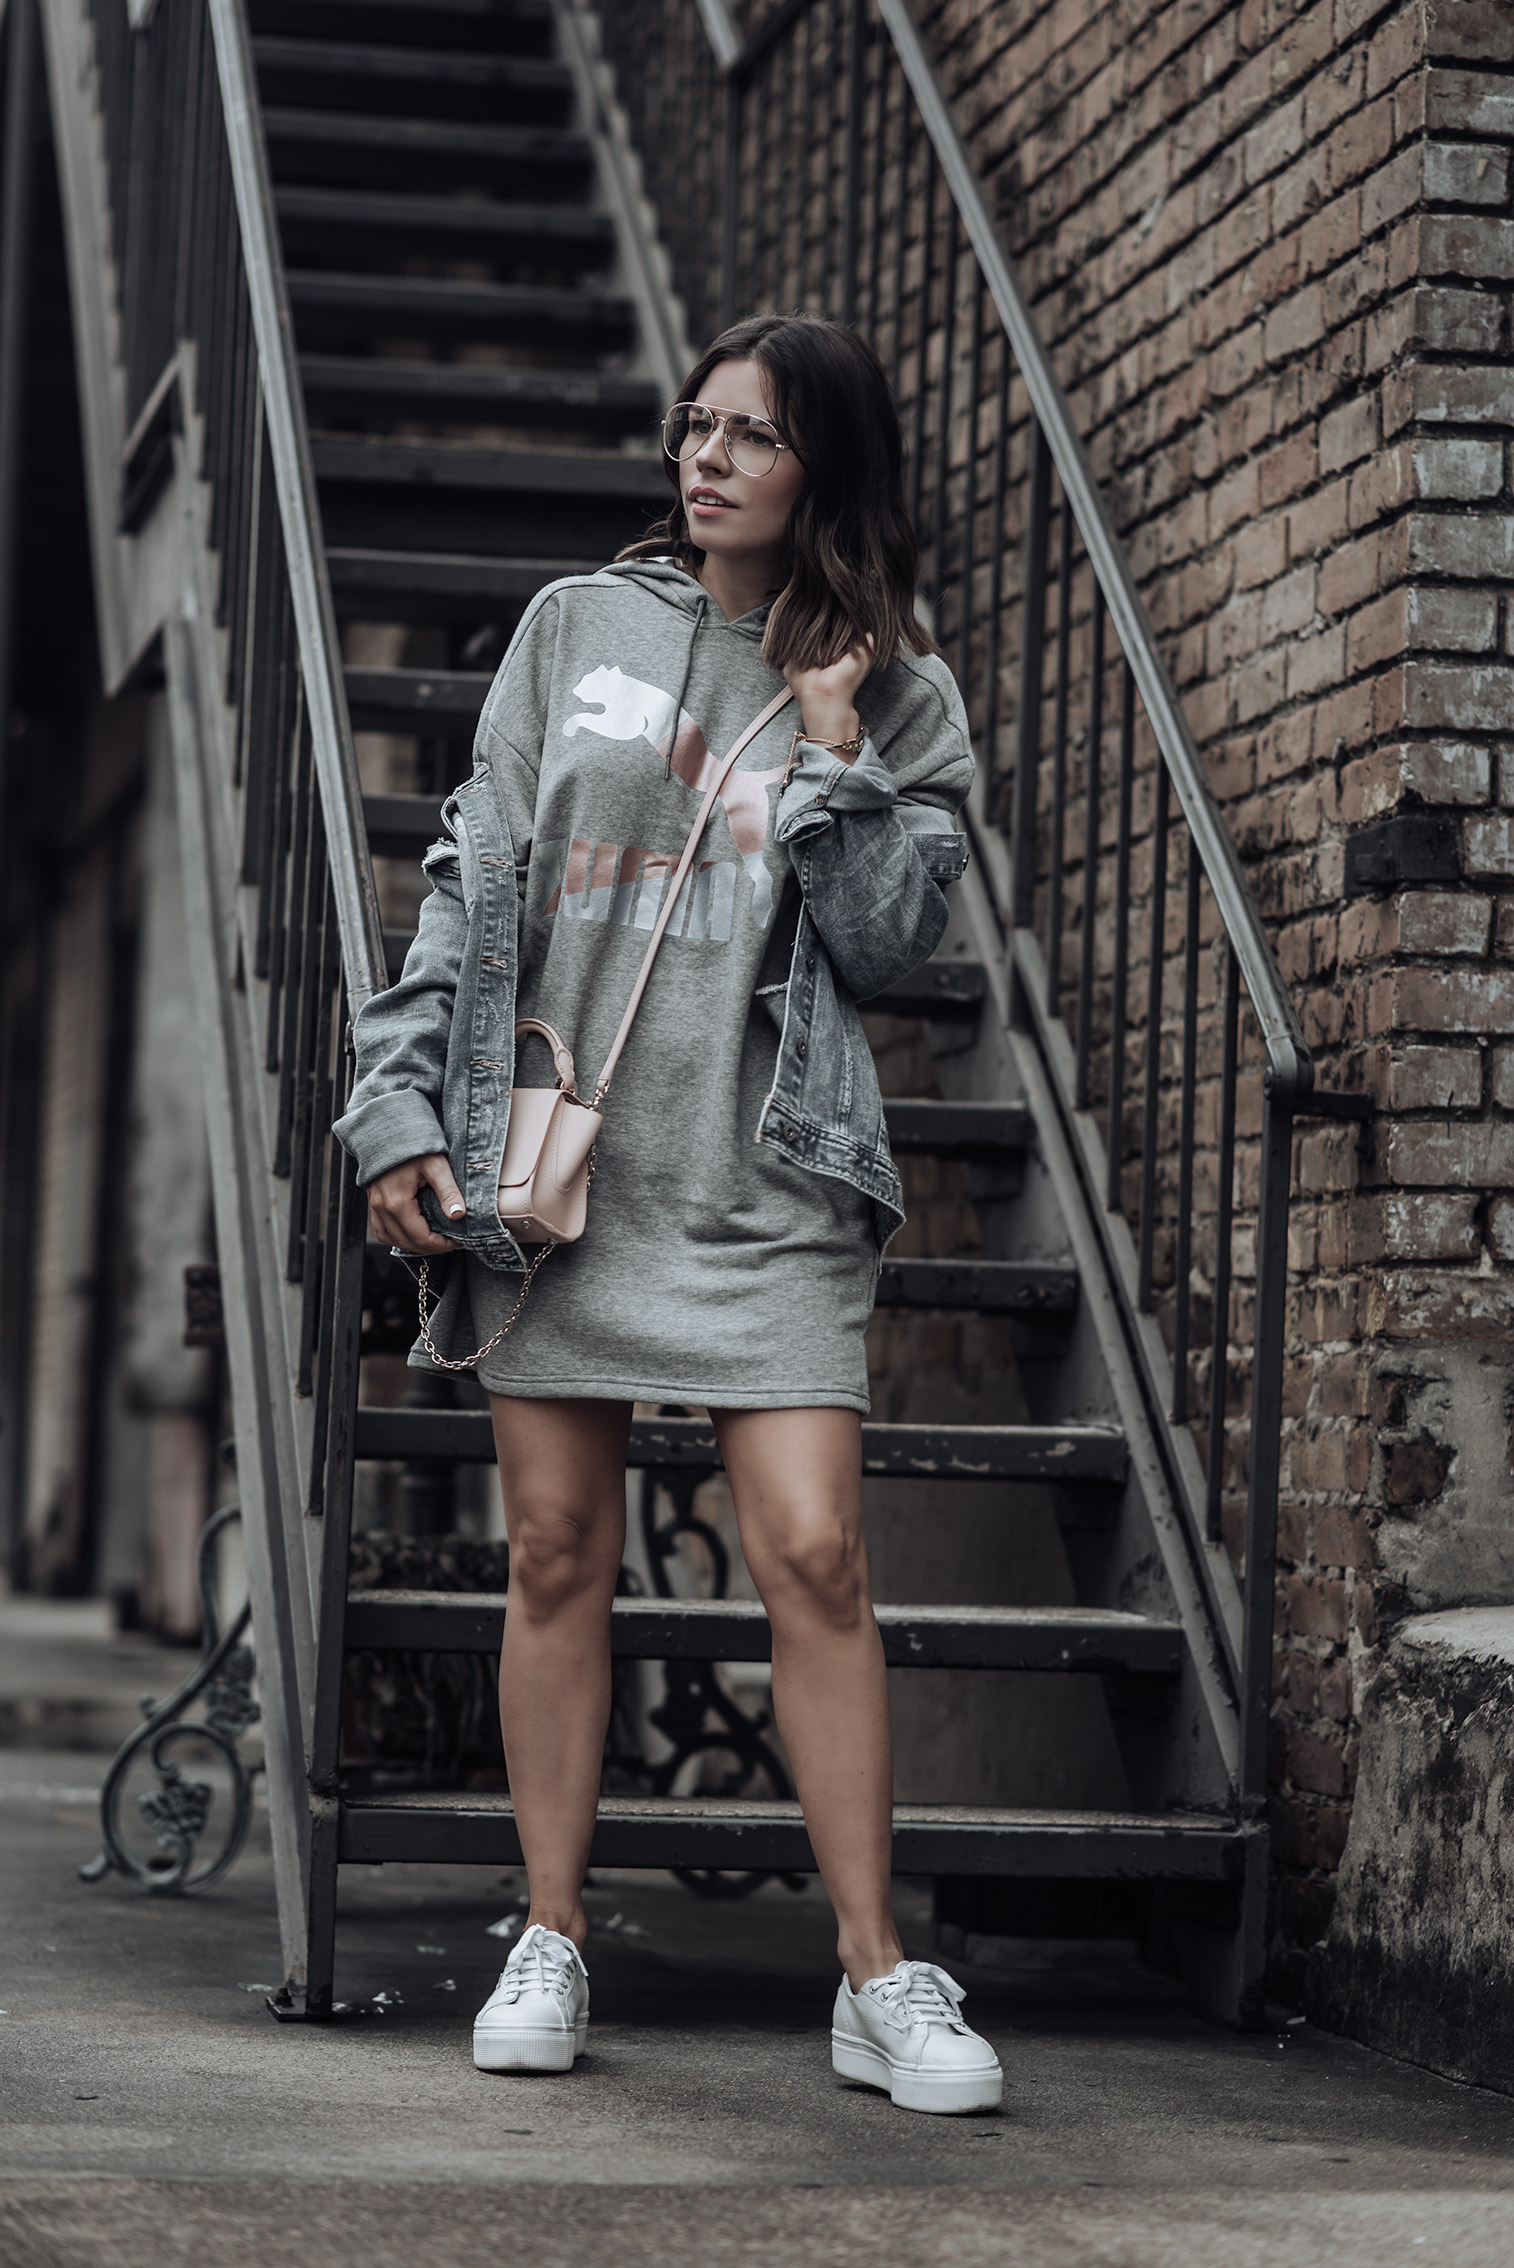 Athleisure wear |Puma Sweatshirt dress | Denim jacket #streetstyle #puma #liketkit